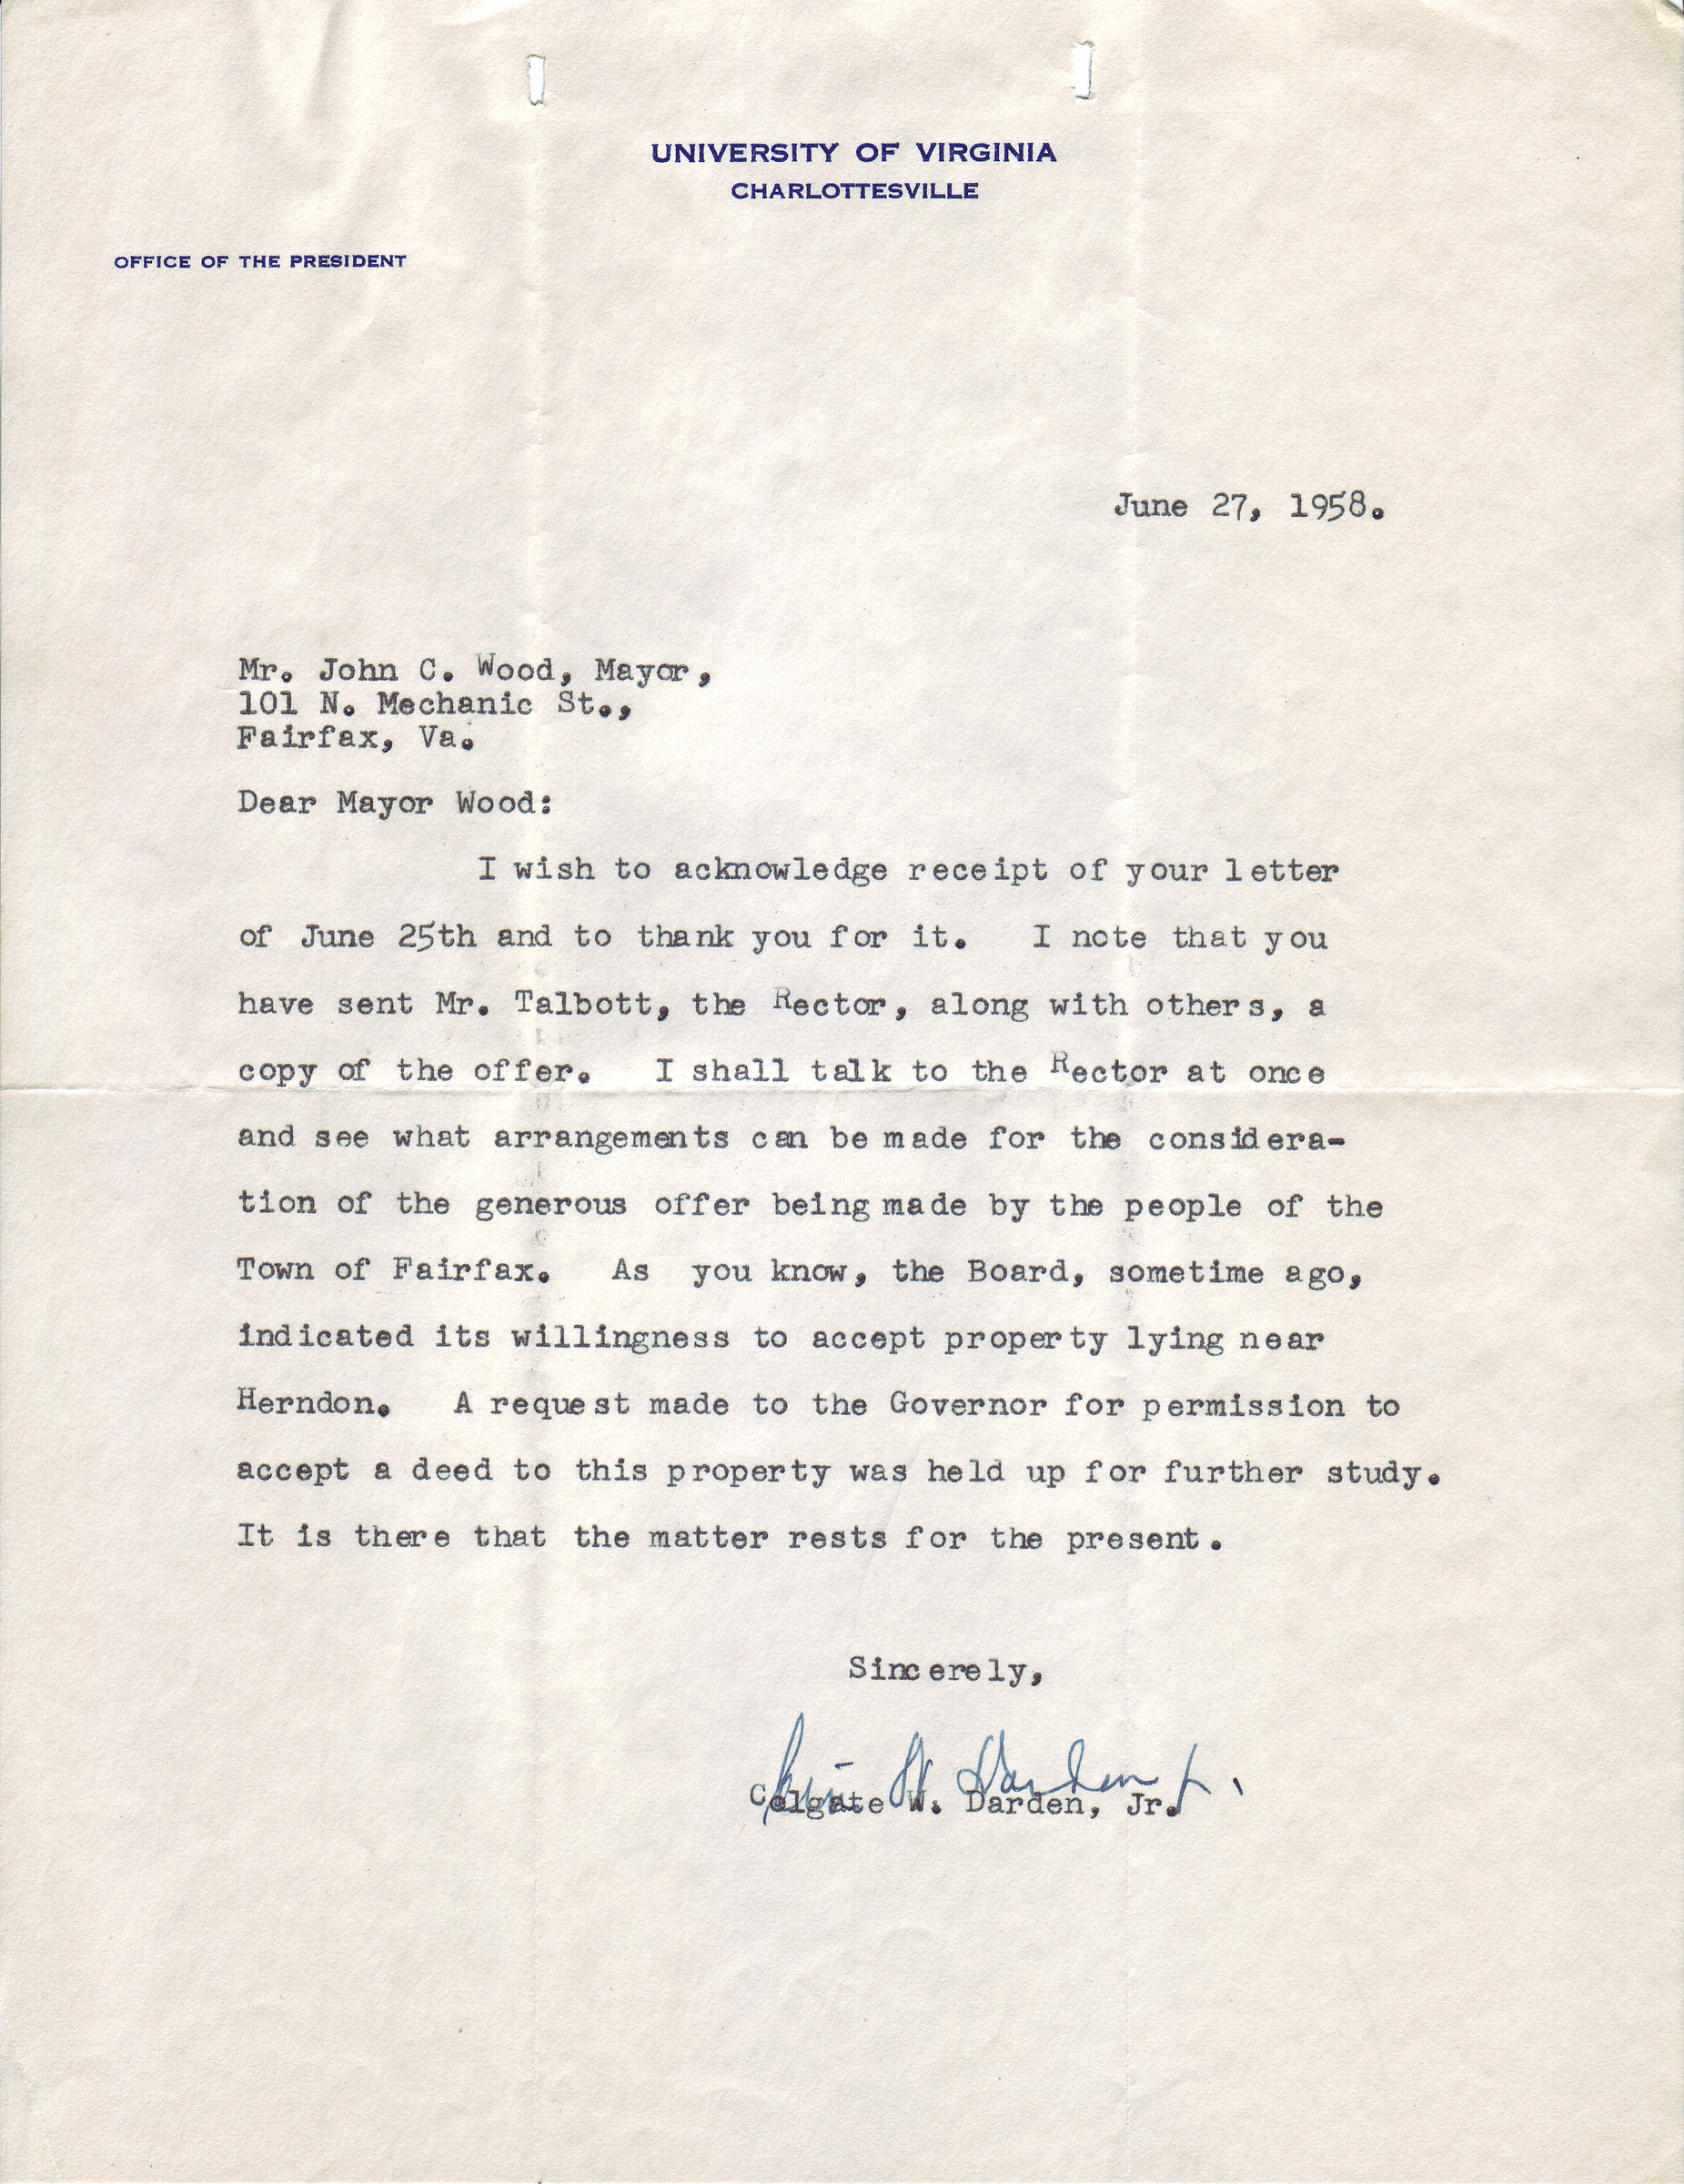 Colgate W. Darden, Jr. to John C. Wood, June 27, 1958.